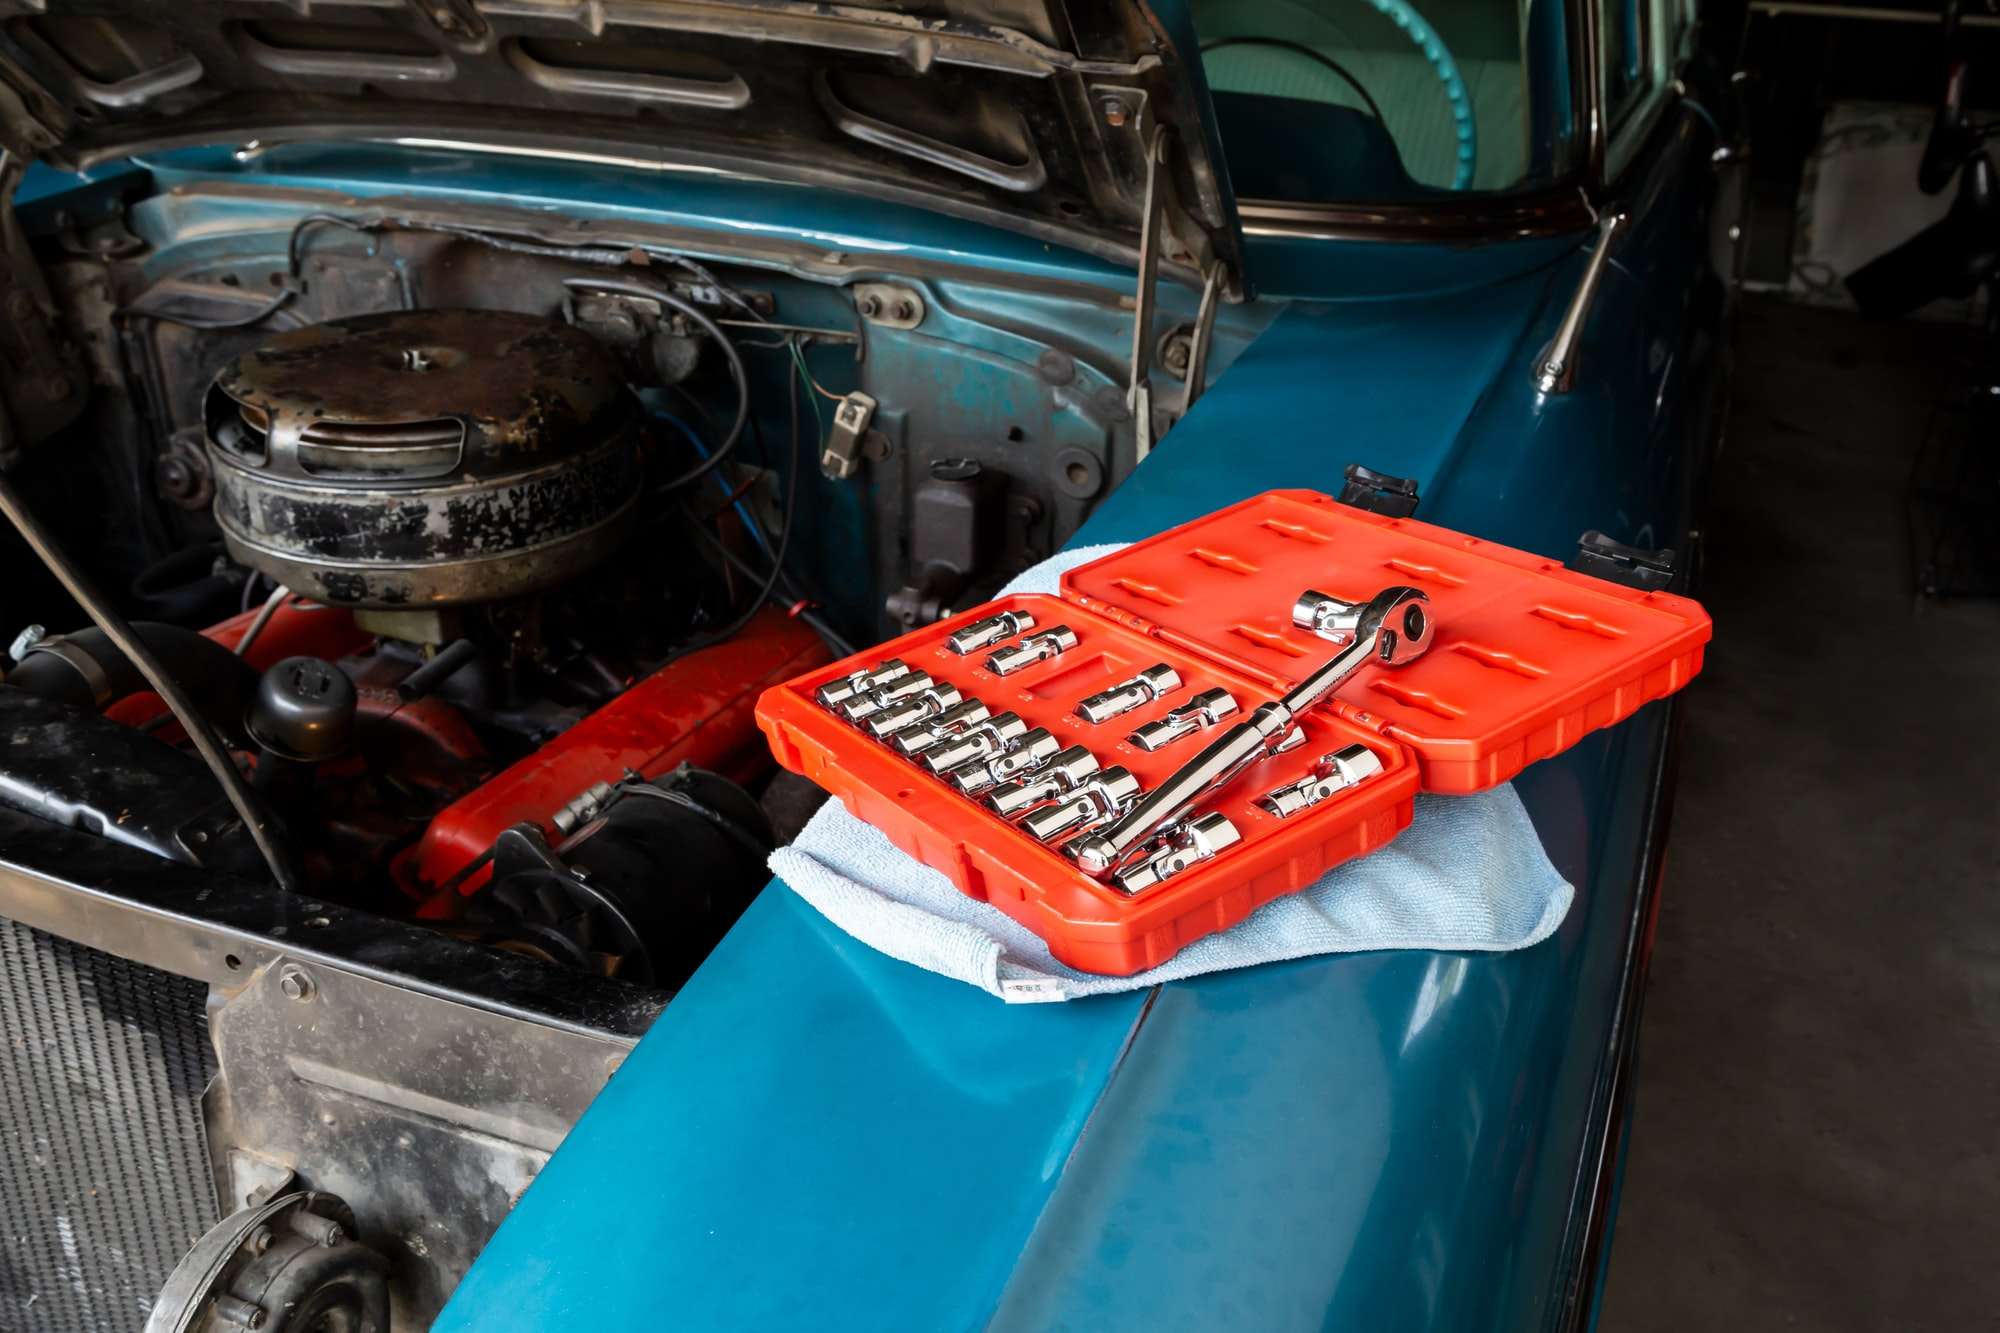 DIY car maintenance: Tips to keep your car engine in good shape